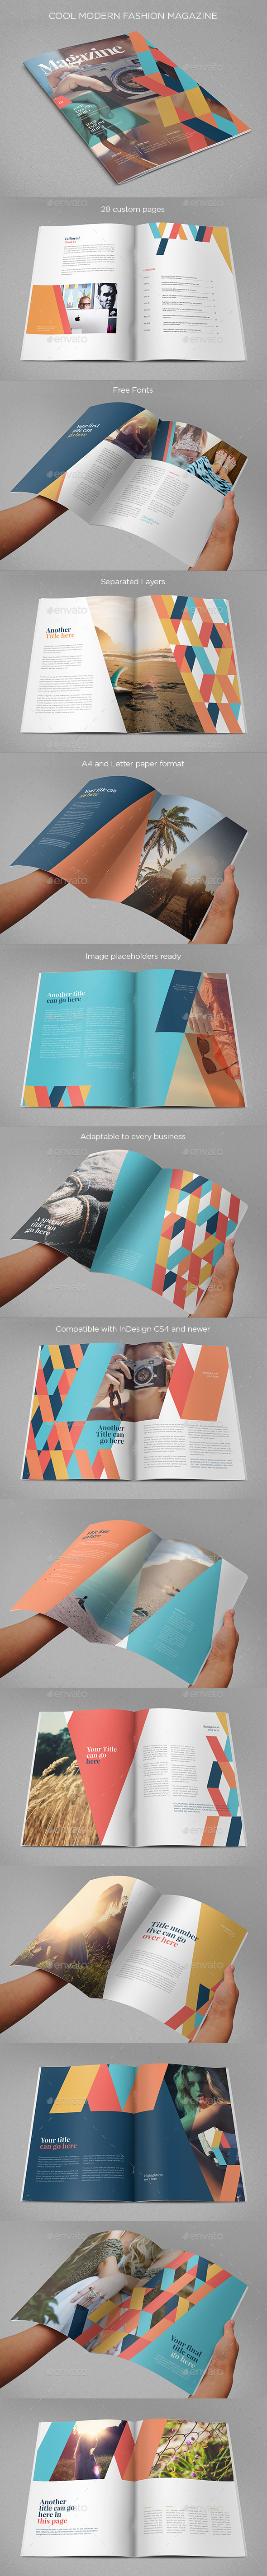 Cool Modern Fashion Magazine - Magazines Print Templates